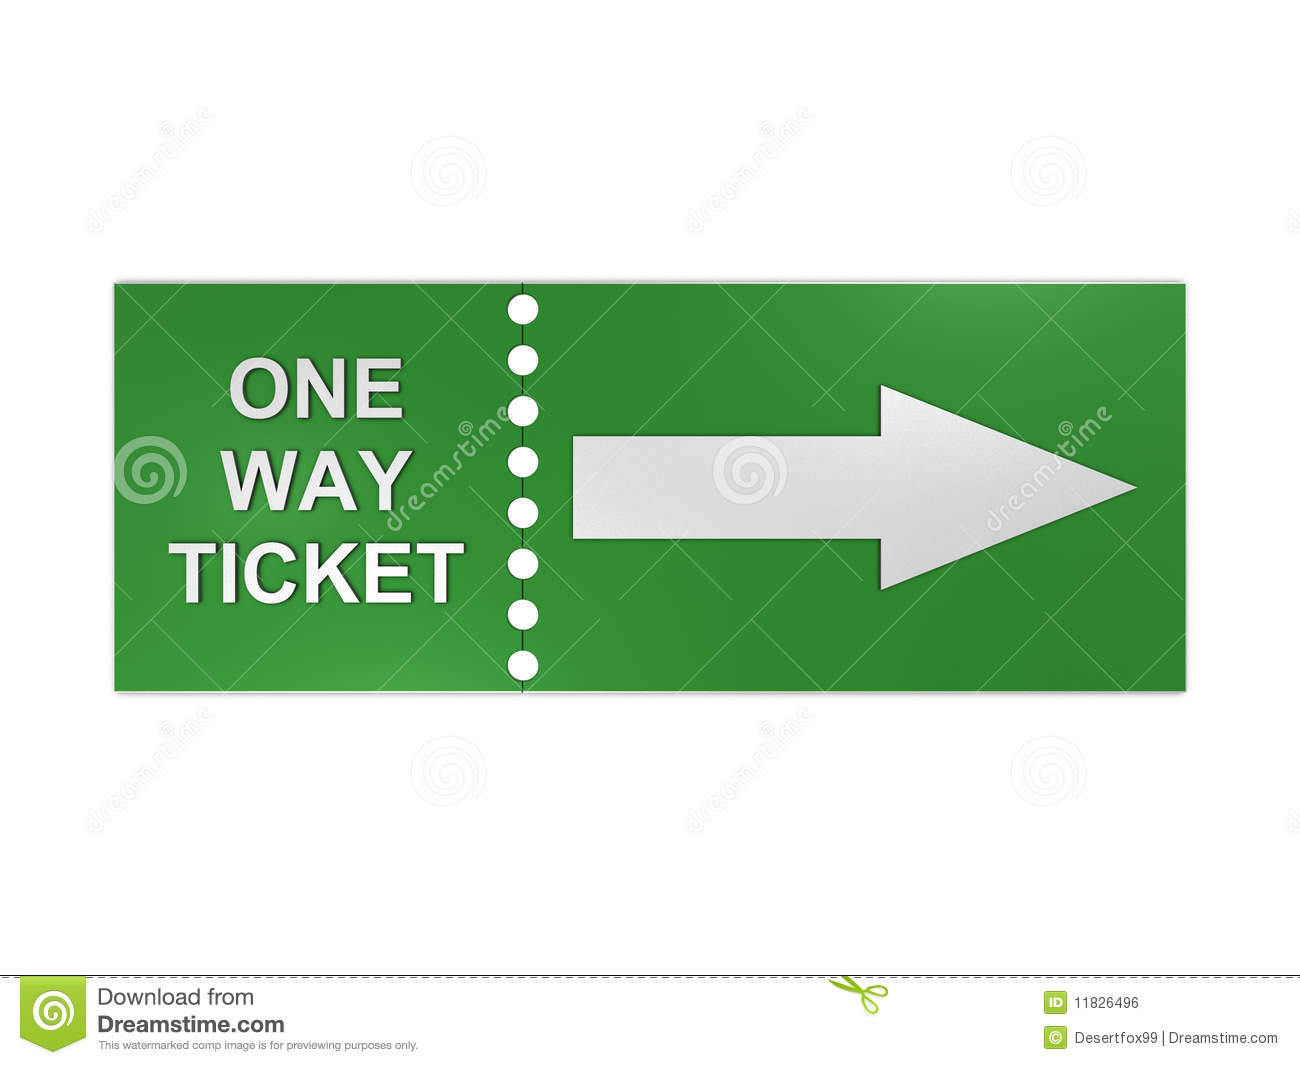 One Way Ticket Royalty Free Stock Image   Image  11826496